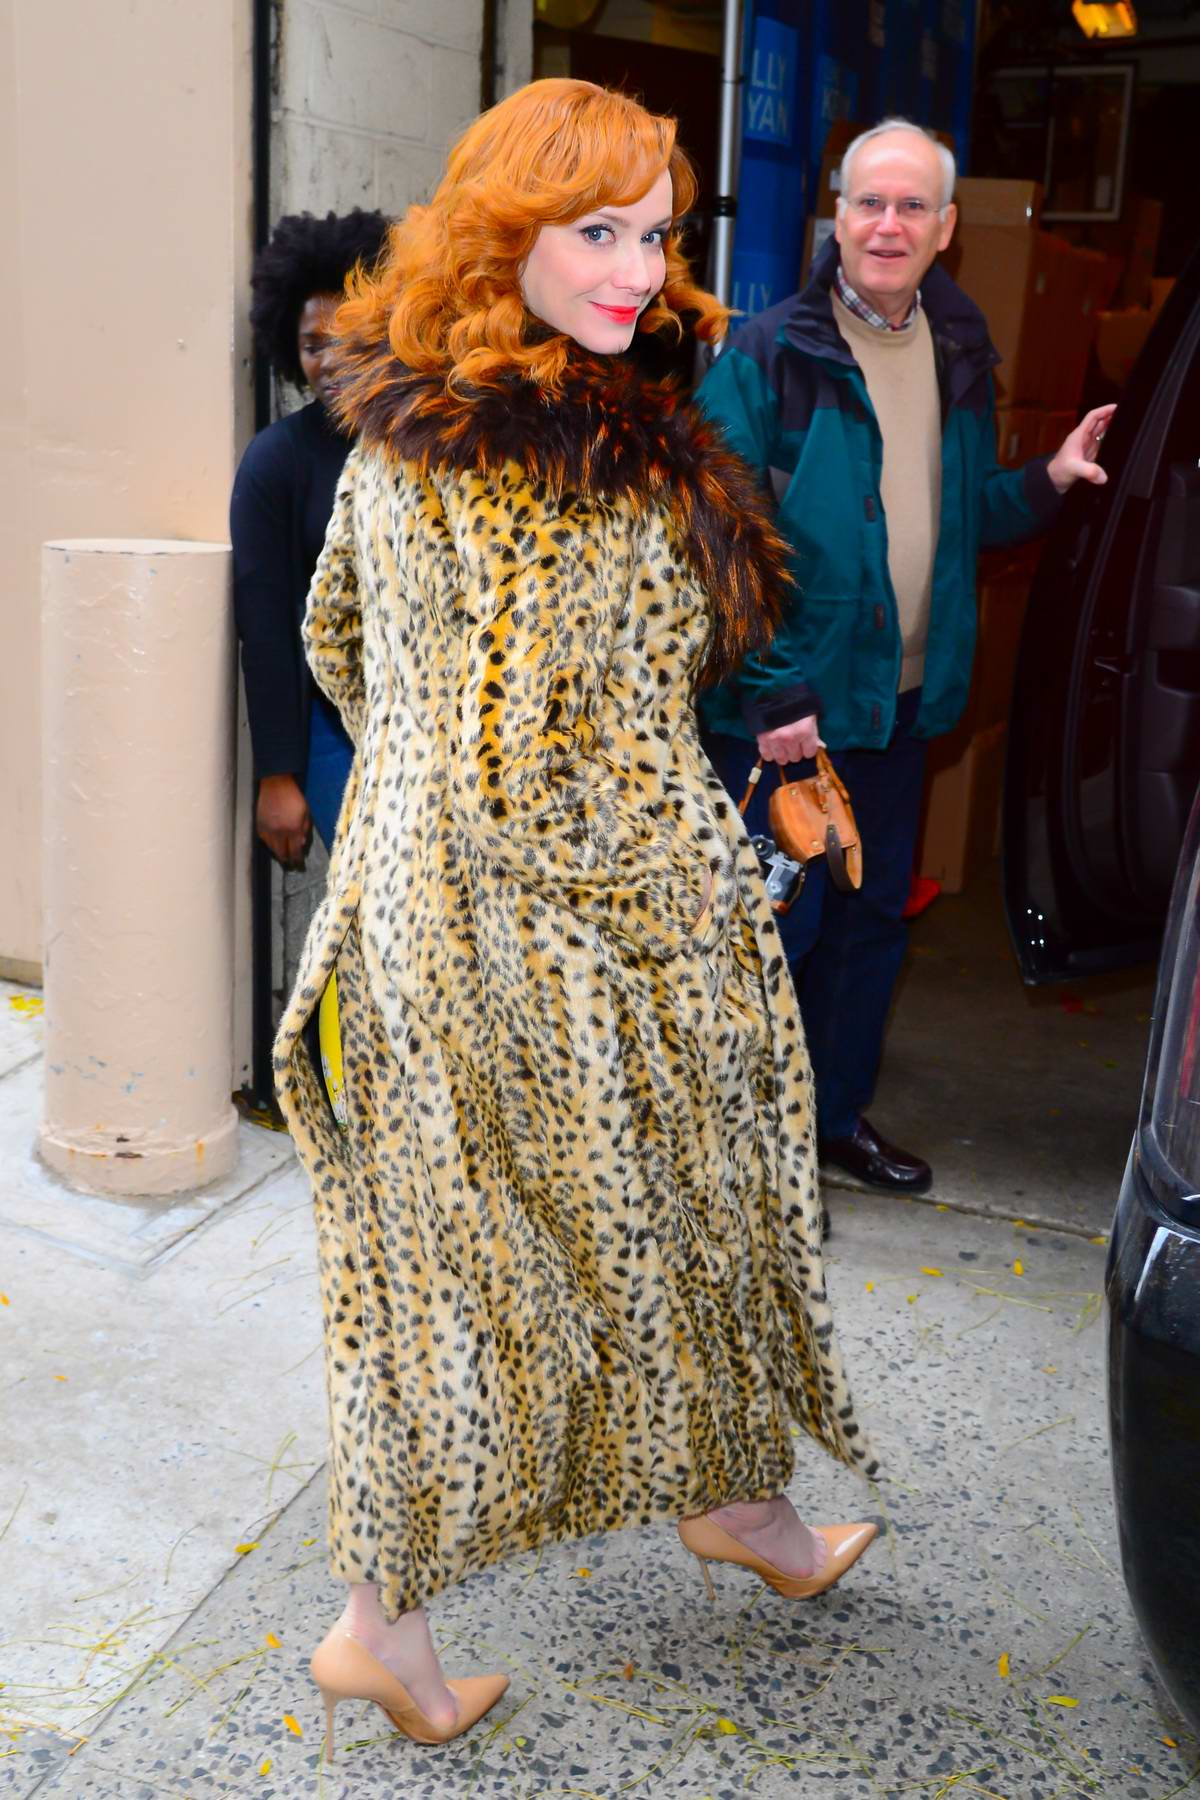 16ecdd419fb8 christina hendricks wearing a fur lapel leopard print coat as she arrives  at an office building in new york city-131217_6